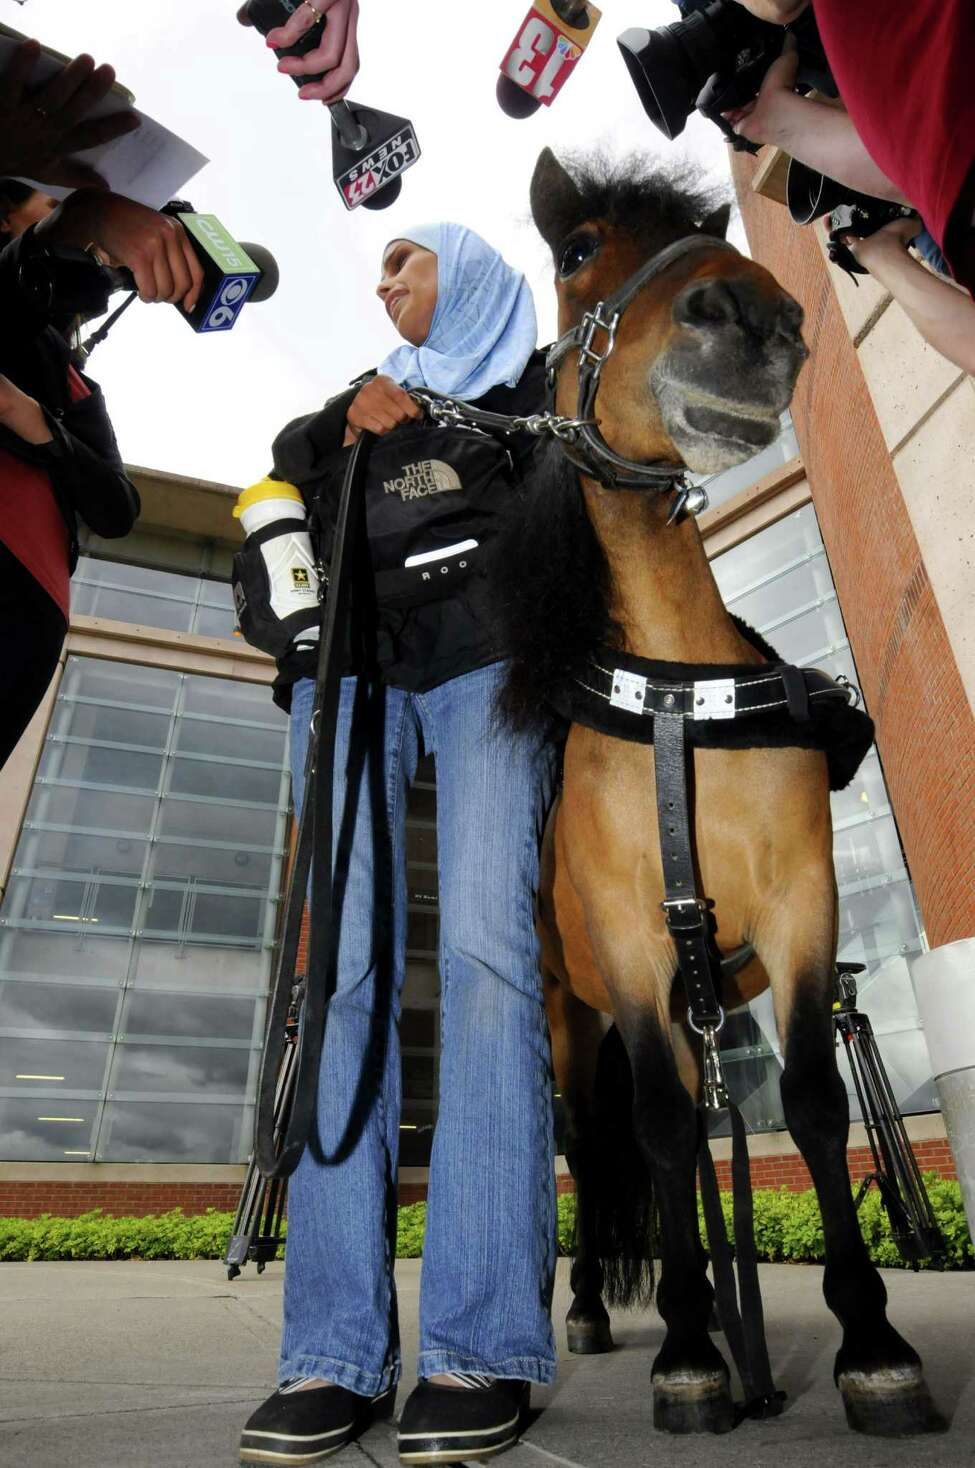 Mona Ramouni, who is blind, talks with local media following her arrival at Albany International Airport with Cali her guide horse in Colonie N.Y. Tuesday June 26, 2012. (Michael P. Farrell/Times Union)